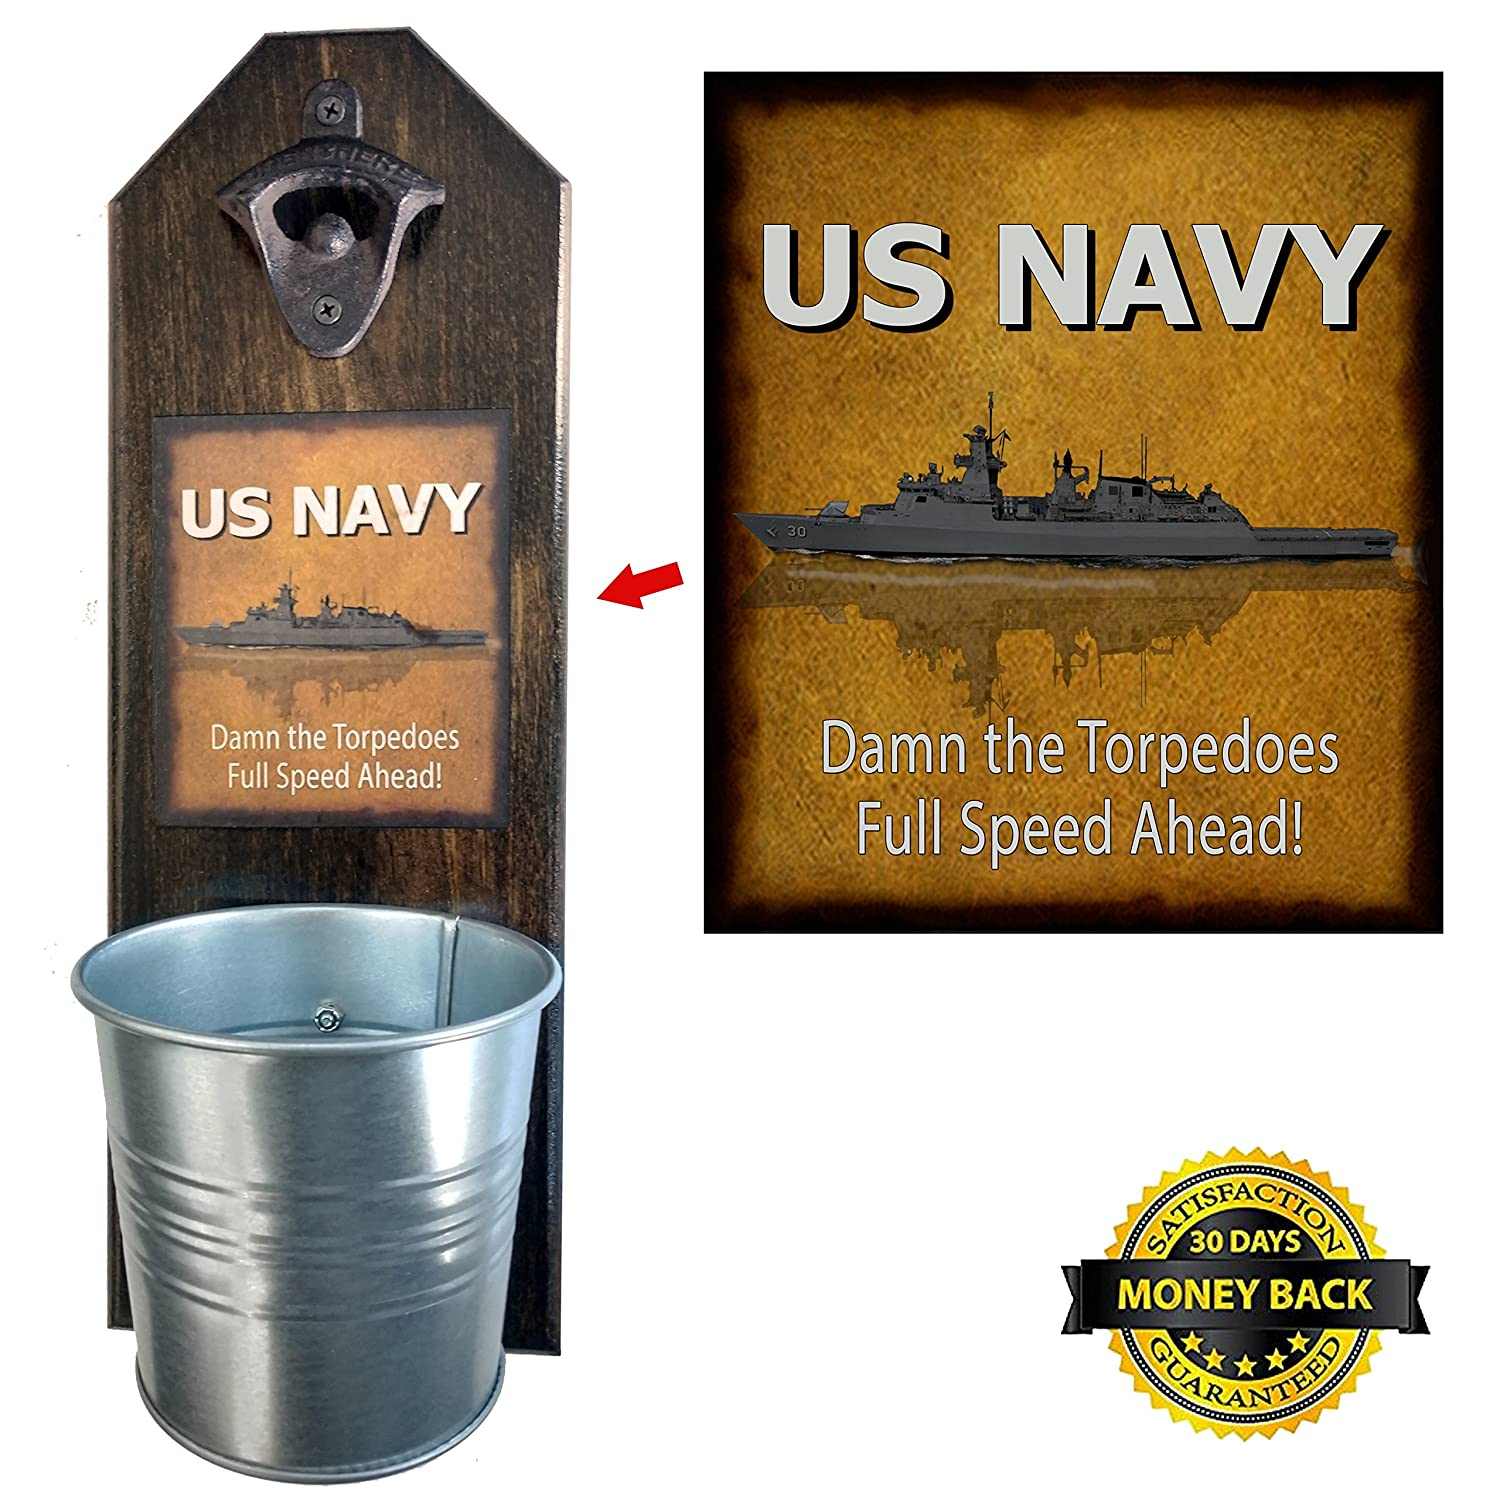 U.S. Navy Damn the Torpedoes Bottle Opener and Cap Catcher, Wall Mounted - Handcrafted by a Vet - Solid Pine, Rustic Cast Iron Opener & Galvanized Bucket - Great Gift for Dad!